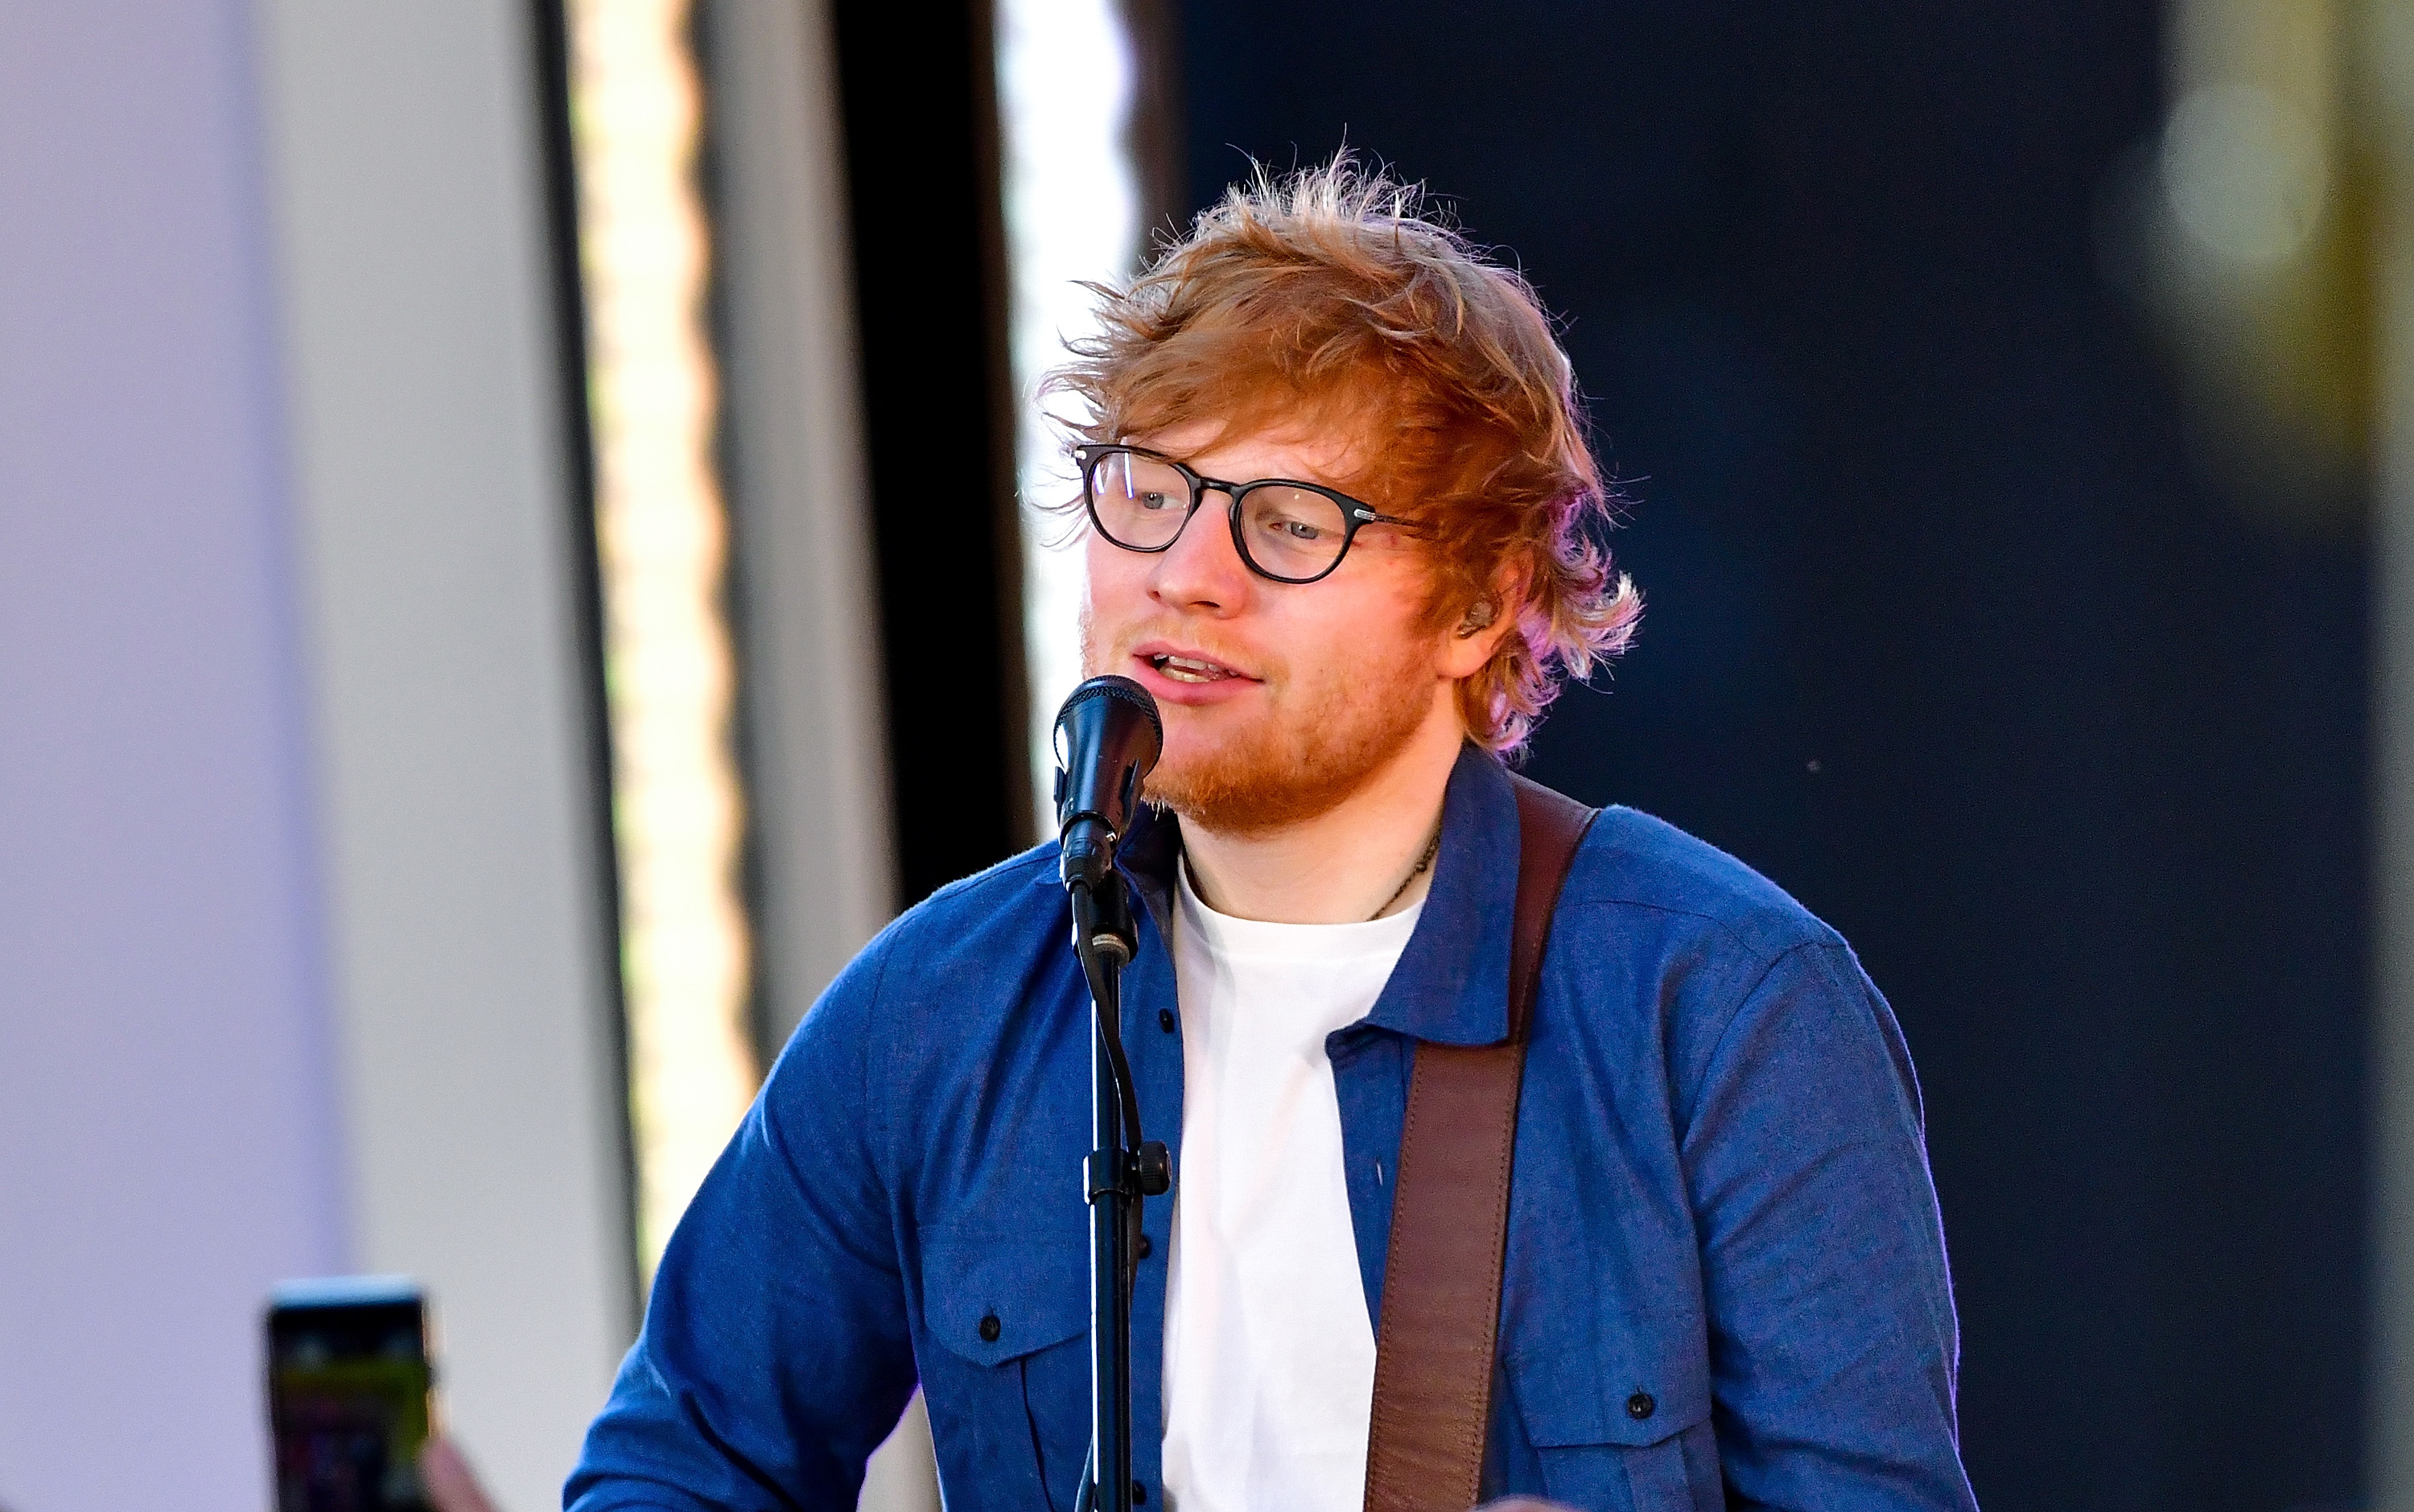 Ed Sheeran performs in Times Square for MTV's  TRL  on October 2, 2017 in New York City.